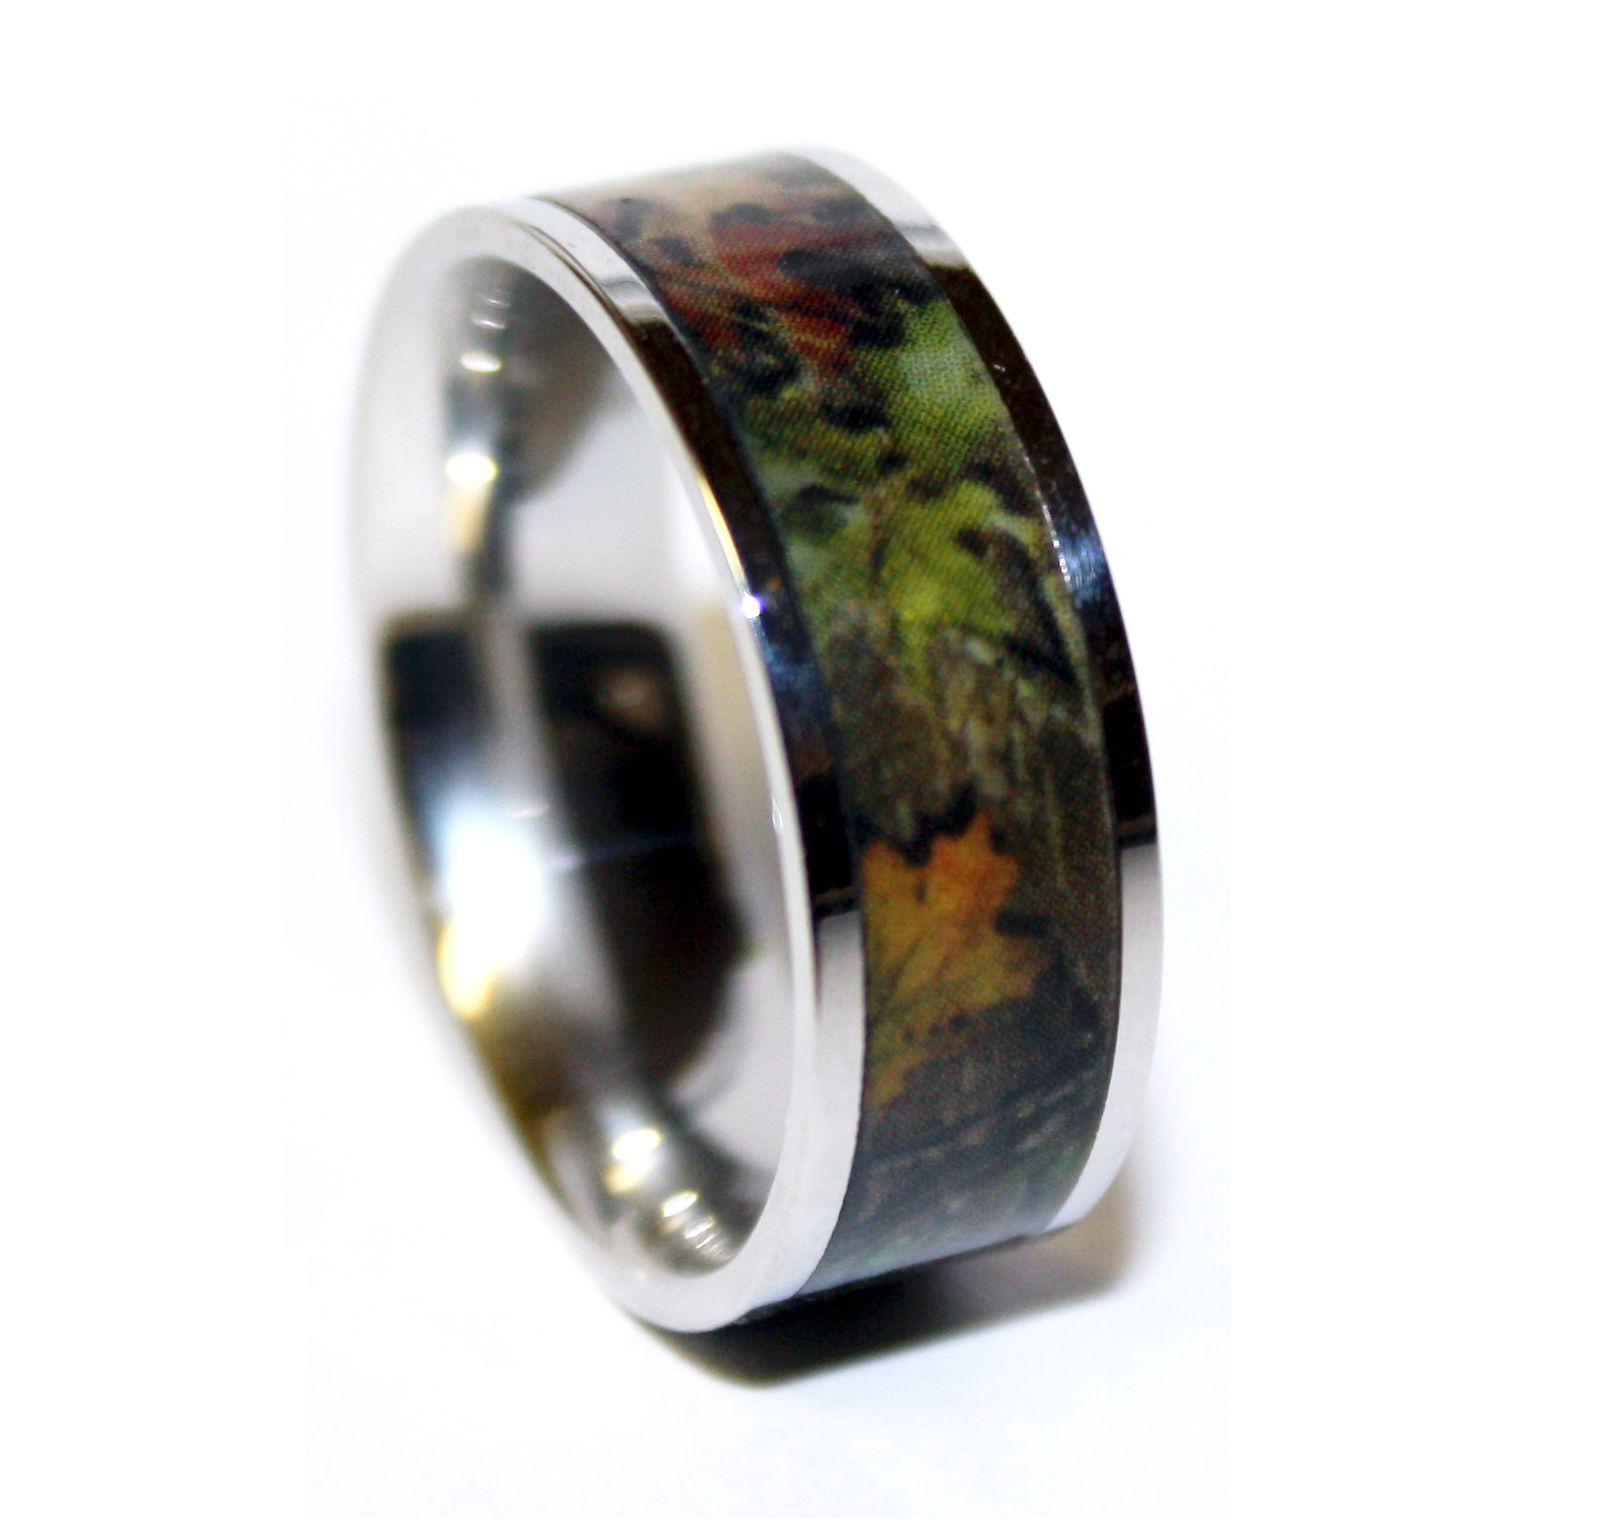 Camo Wedding Ring Titanium Wedding Band wedding jewelry